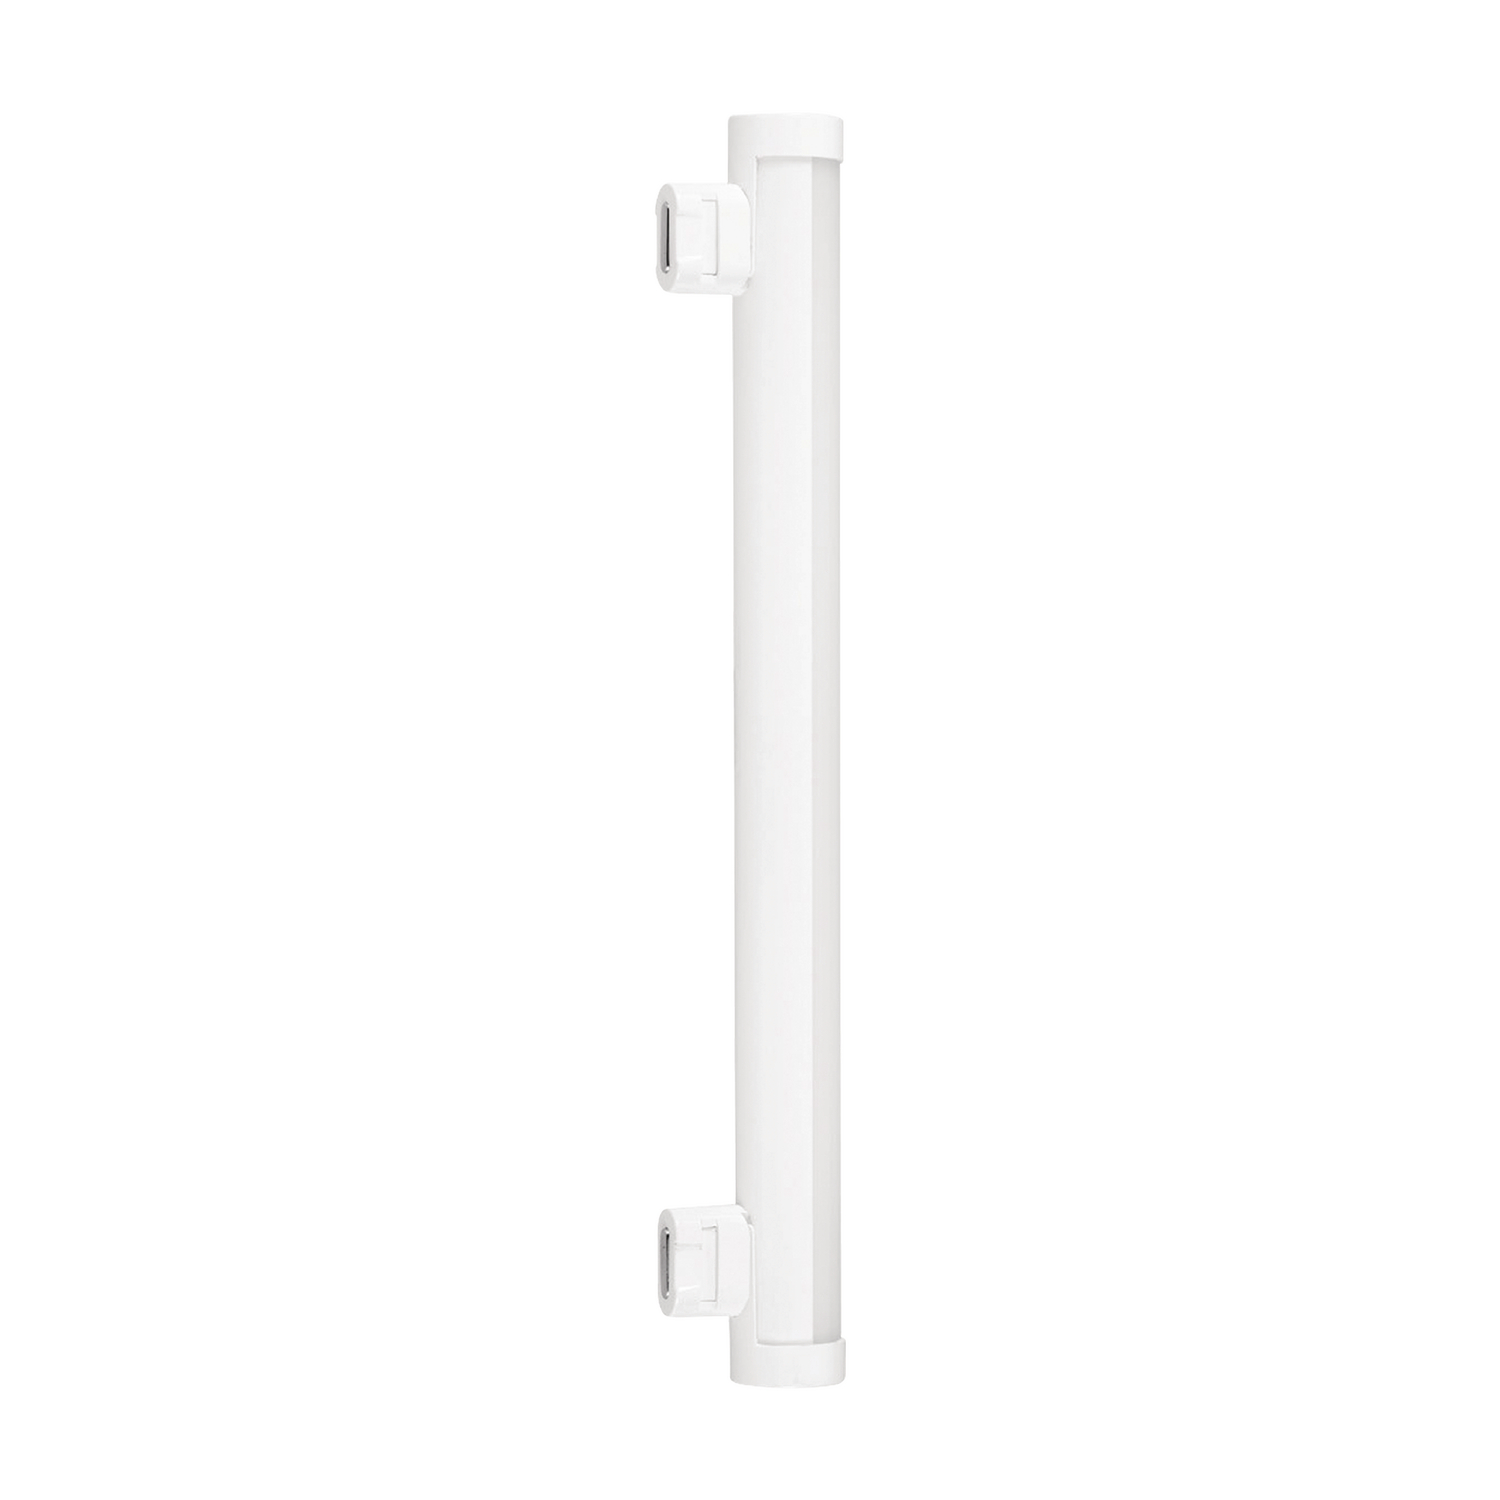 LED-Lampe S14s Linear 3.5 W 280 lm 2700 K